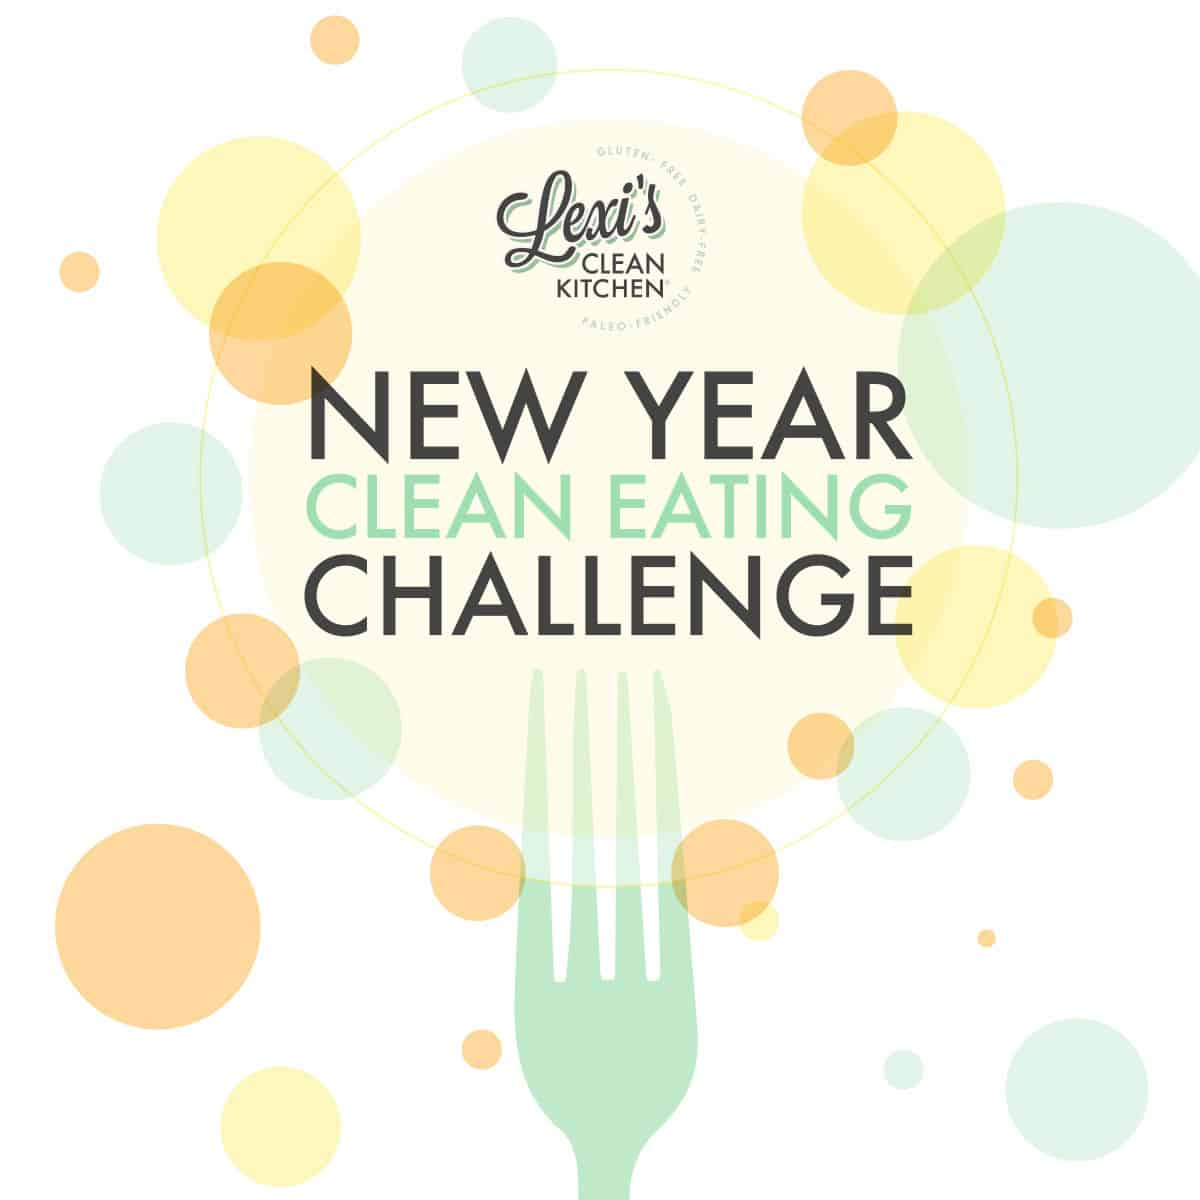 New Year Clean Eating Challenge - Lexi's Clean Kitchen